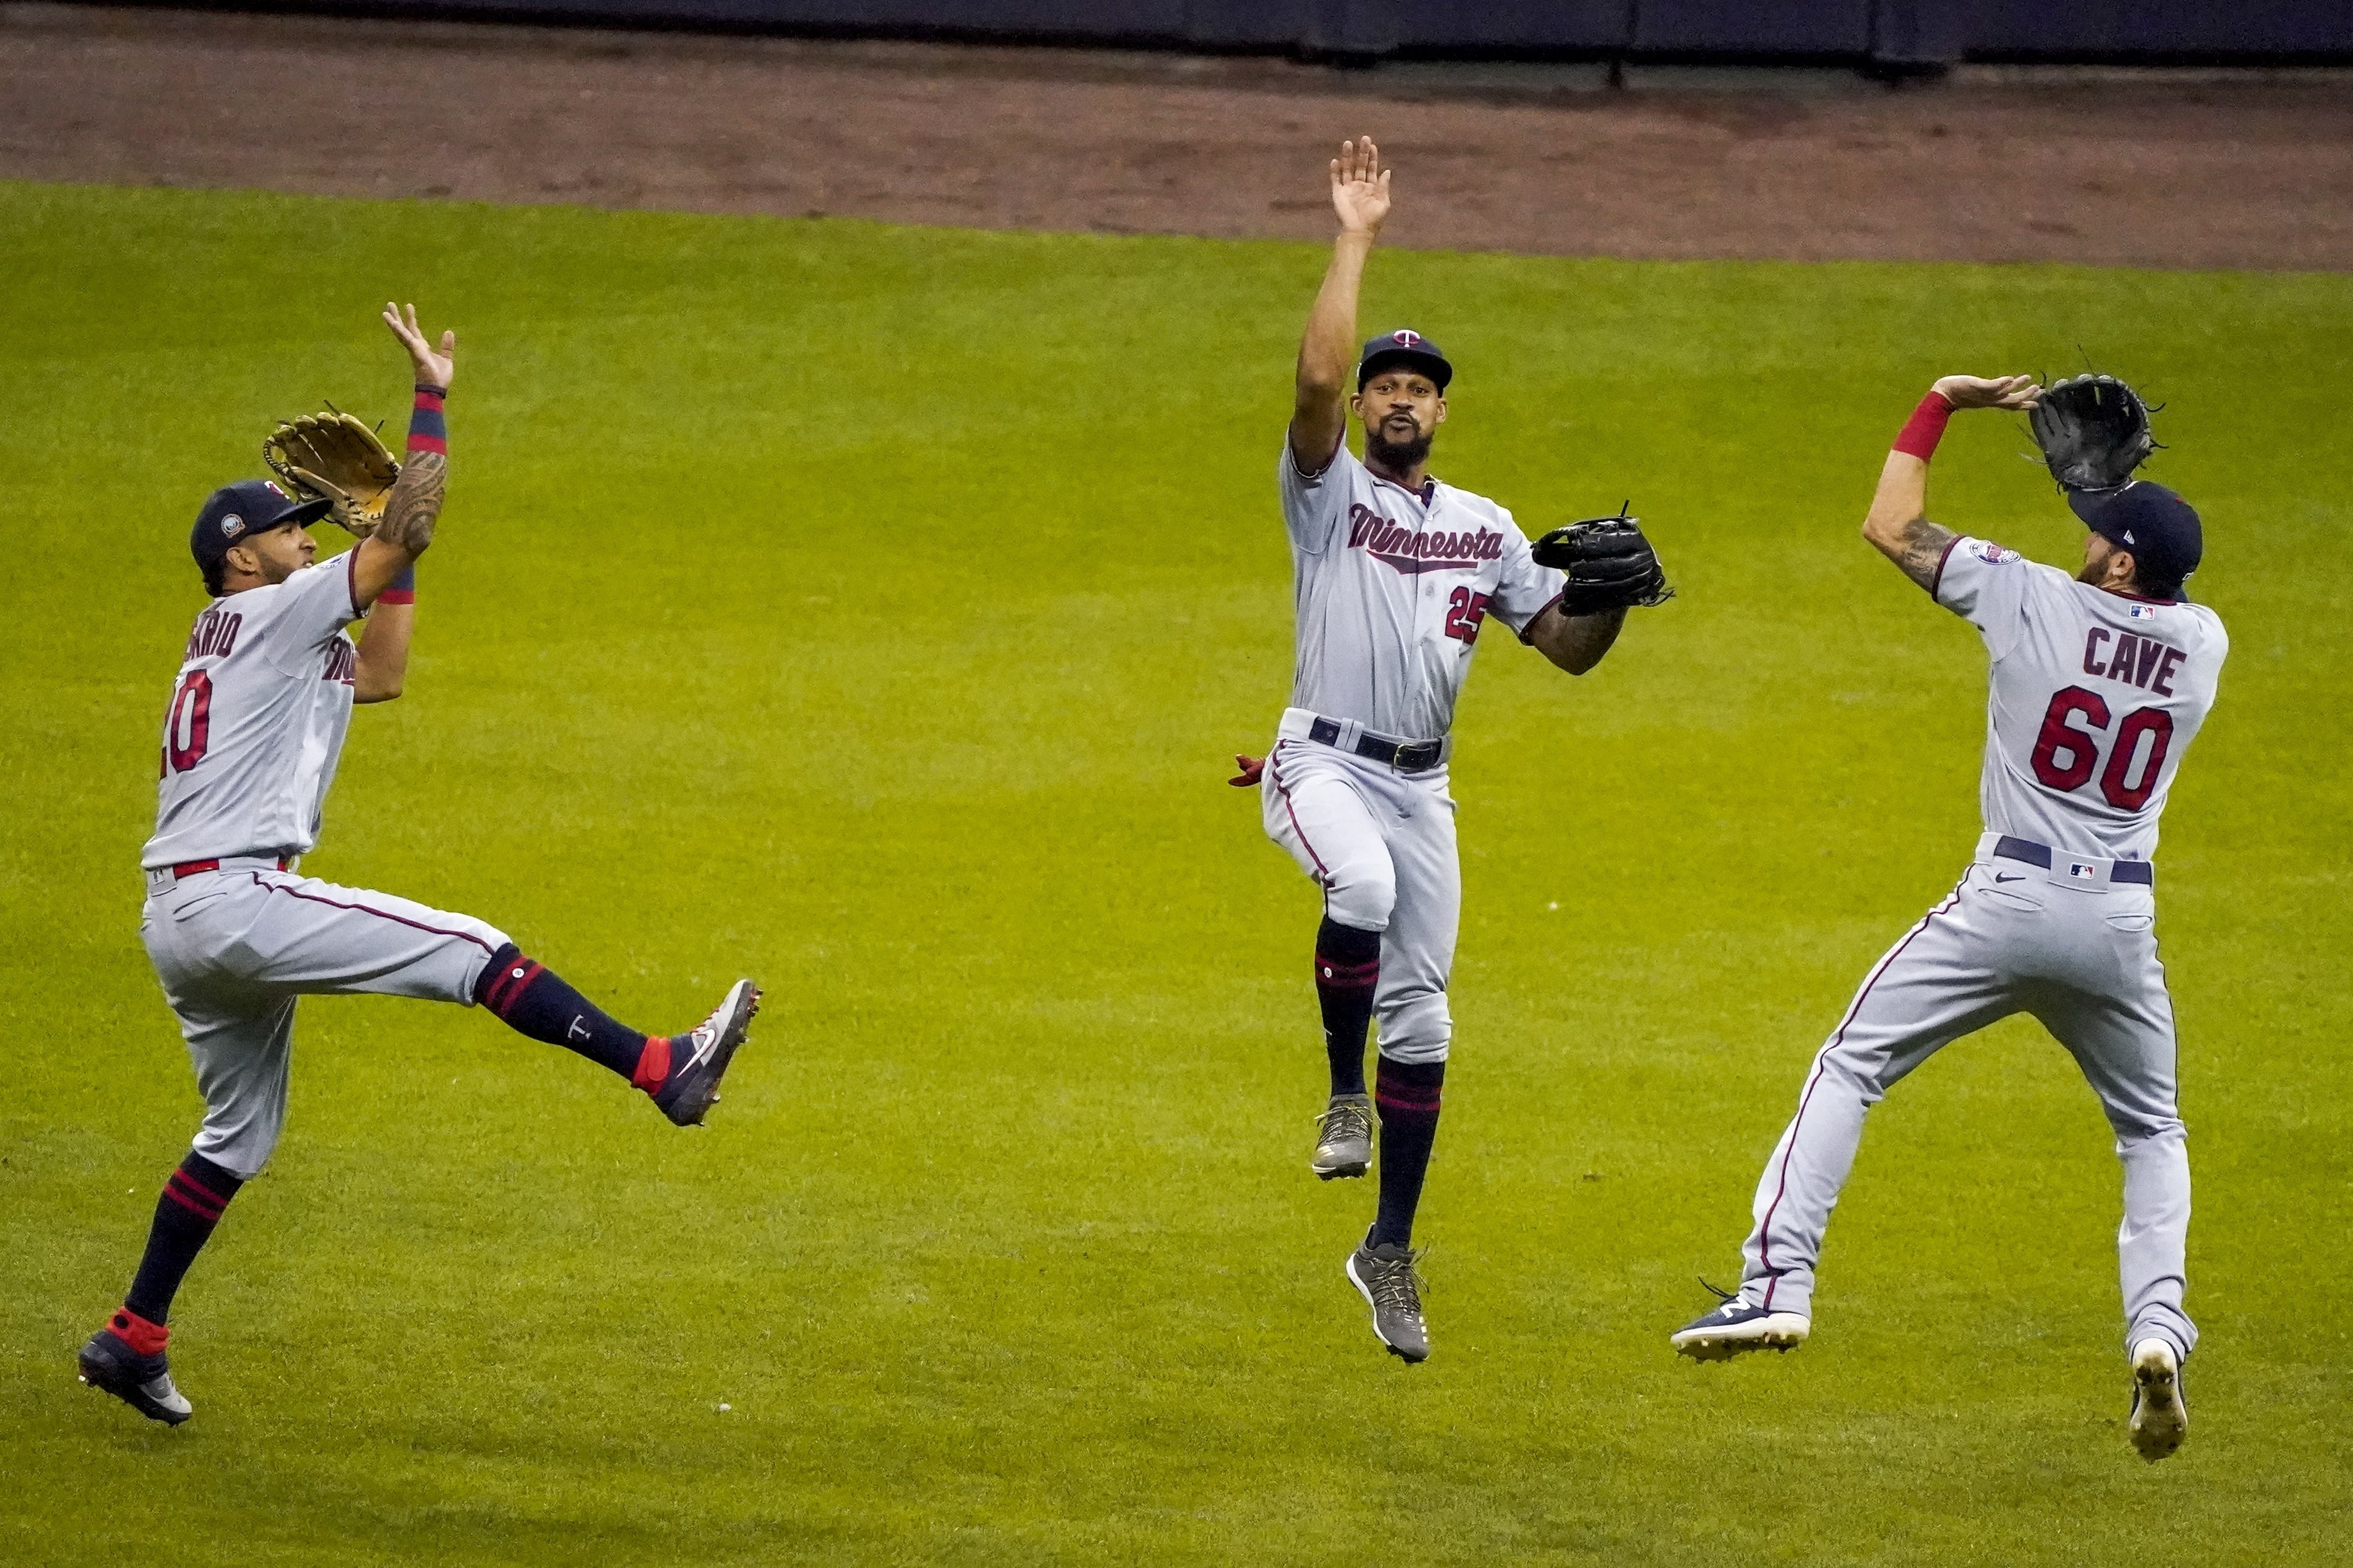 Minnesota Twins' Eddie Rosario, Byron Buxton and Jake Cave celebrate after a baseball game against the Milwaukee Brewers Wednesday, Aug. 12, 2020, in Milwaukee. The Twins won 12-2. (AP Photo/Morry Gash)